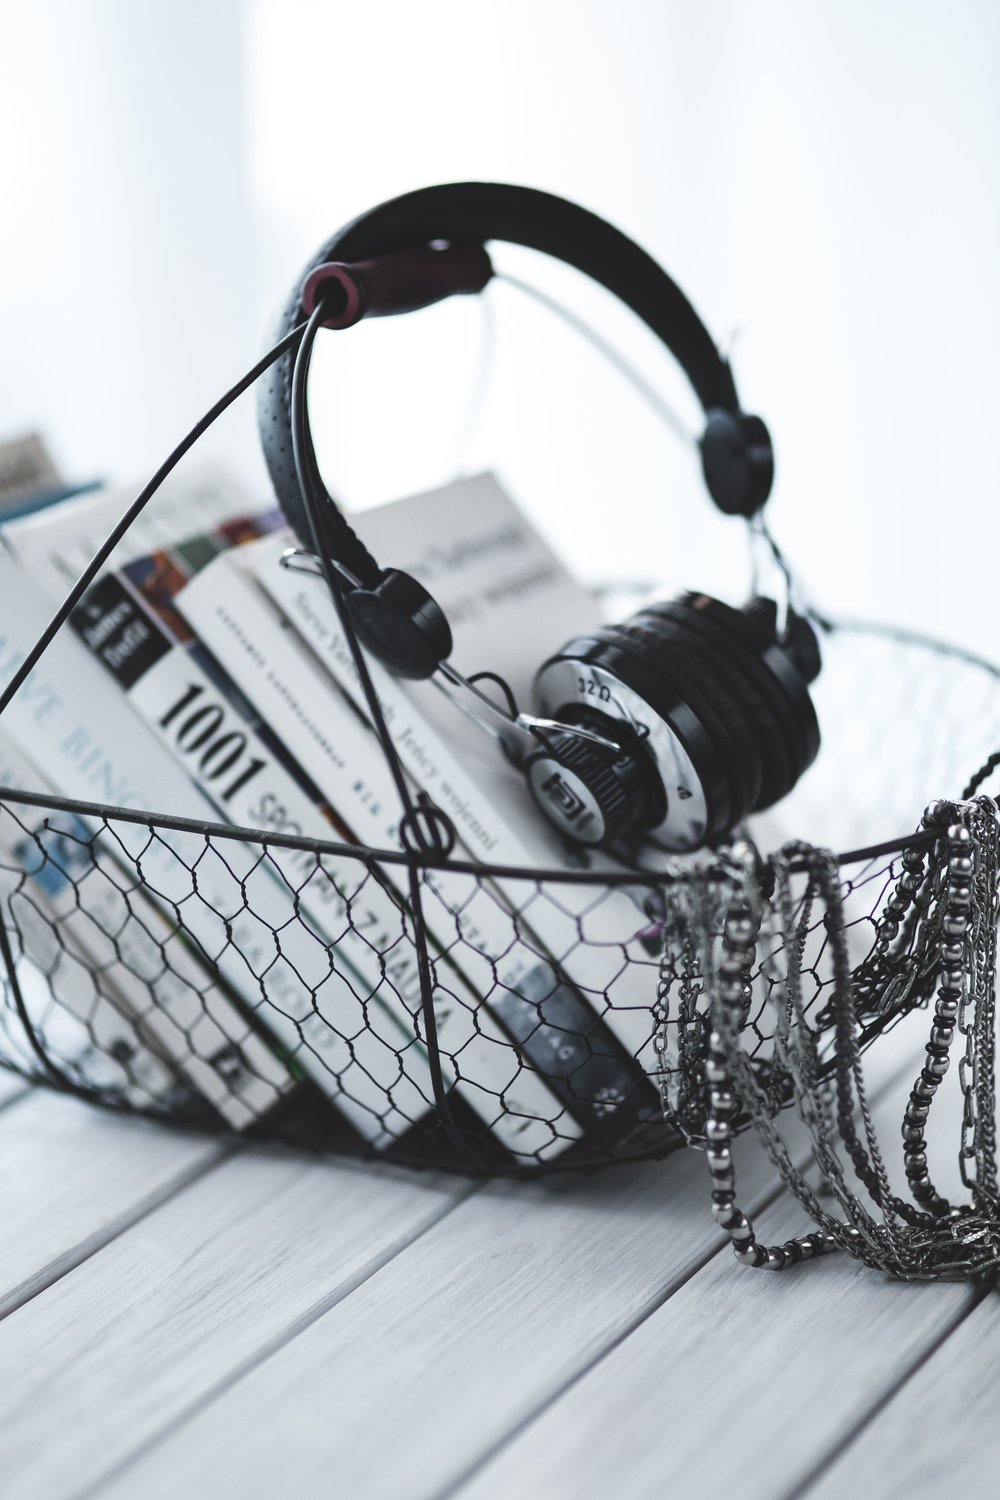 kaboompics_Headphones with a basket of books.jpg